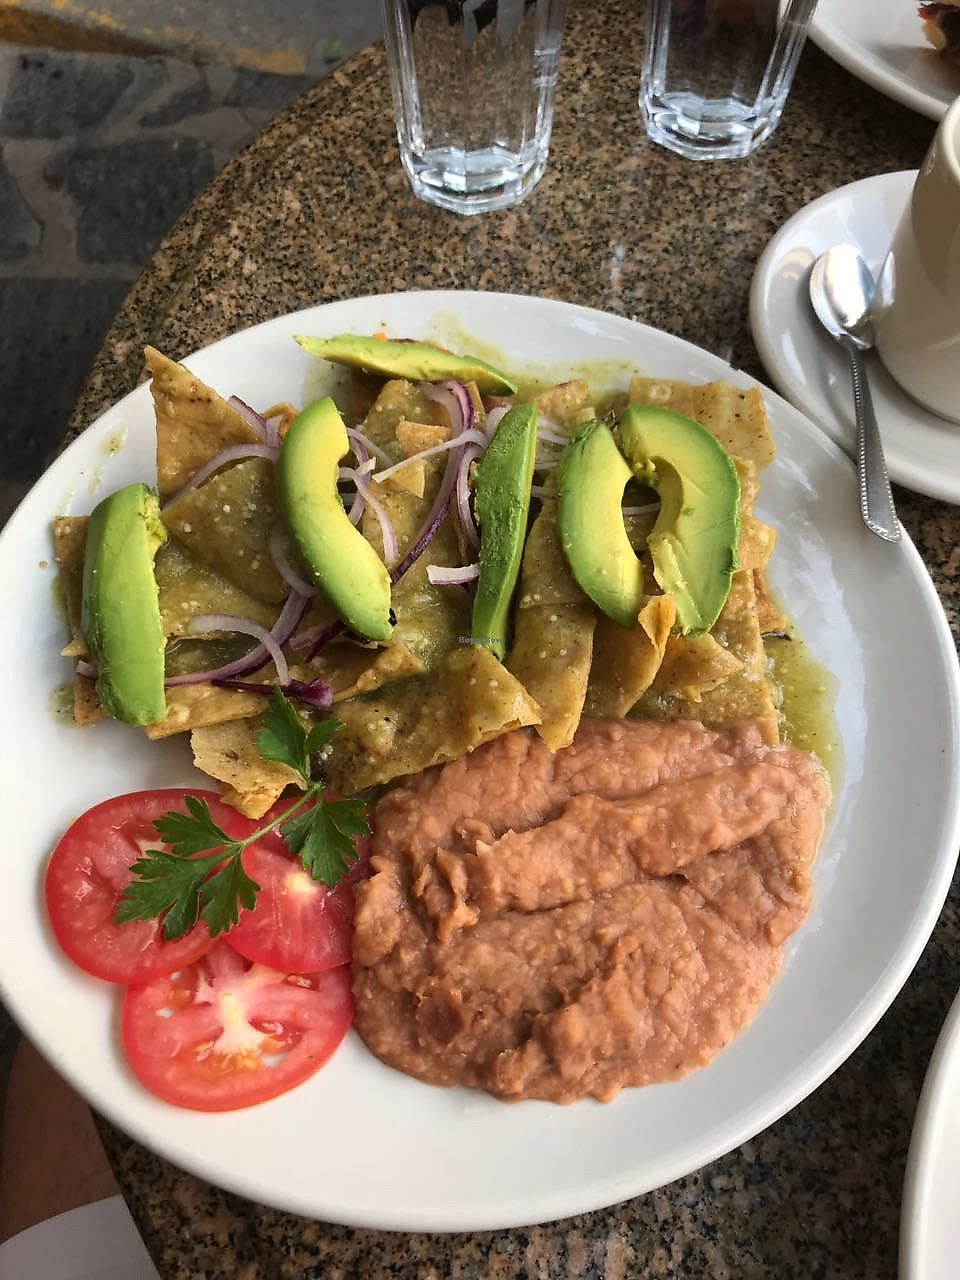 """Photo of Via Organica  by <a href=""""/members/profile/JosiahW"""">JosiahW</a> <br/>Chilaquiles Verdes Vegano. Specify Green Chilaquiles no cheese add avocado and onion <br/> April 23, 2018  - <a href='/contact/abuse/image/20974/390172'>Report</a>"""